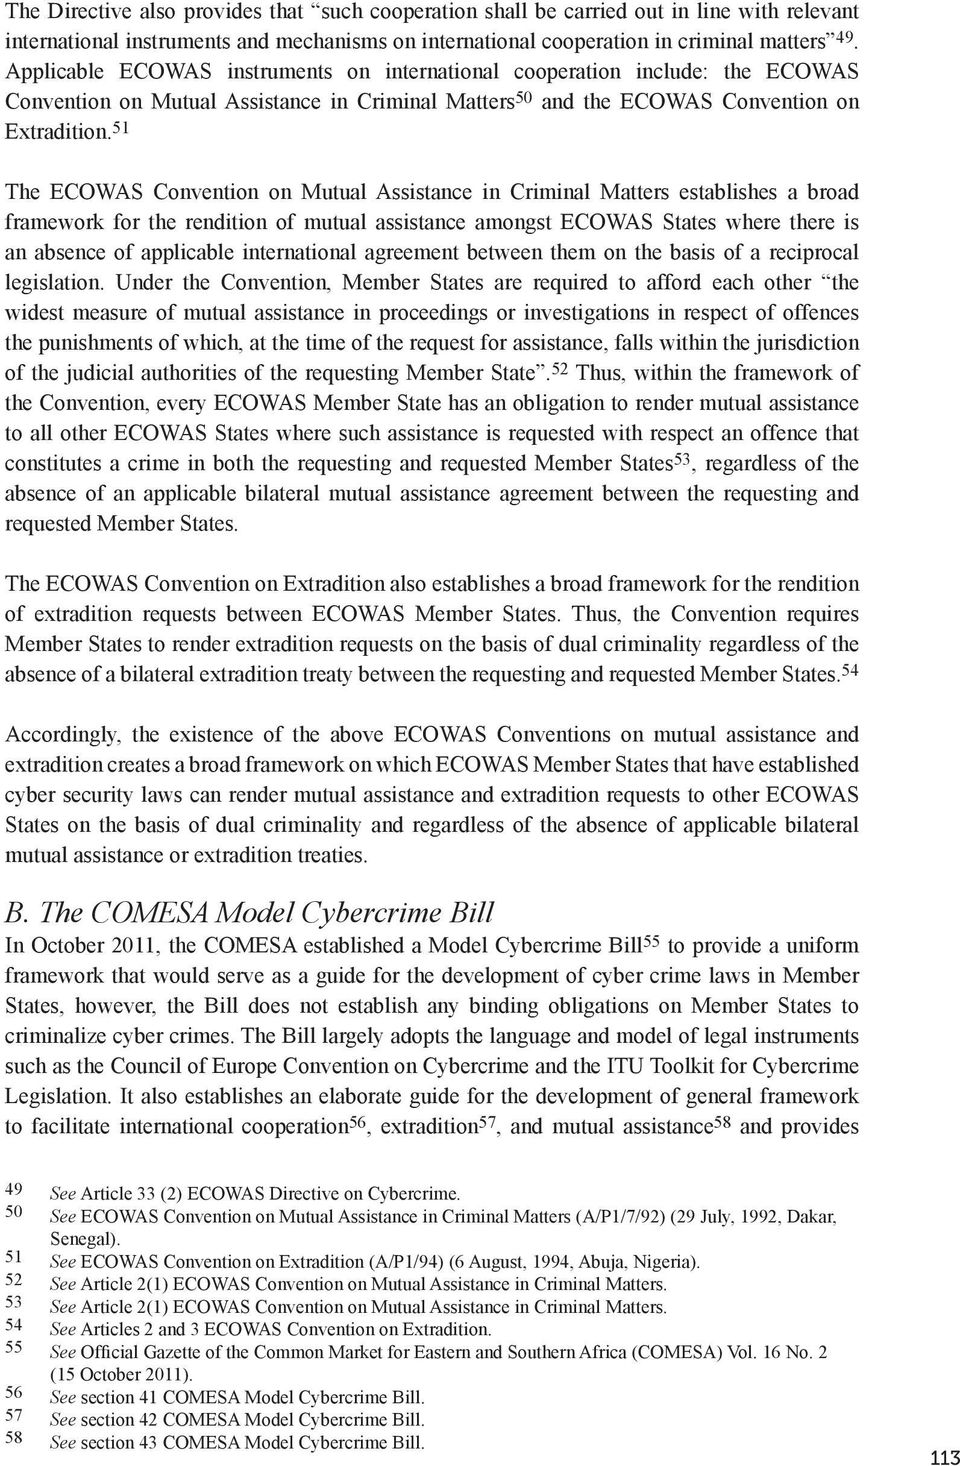 51 The ECOWAS Convention on Mutual Assistance in Criminal Matters establishes a broad framework for the rendition of mutual assistance amongst ECOWAS States where there is an absence of applicable